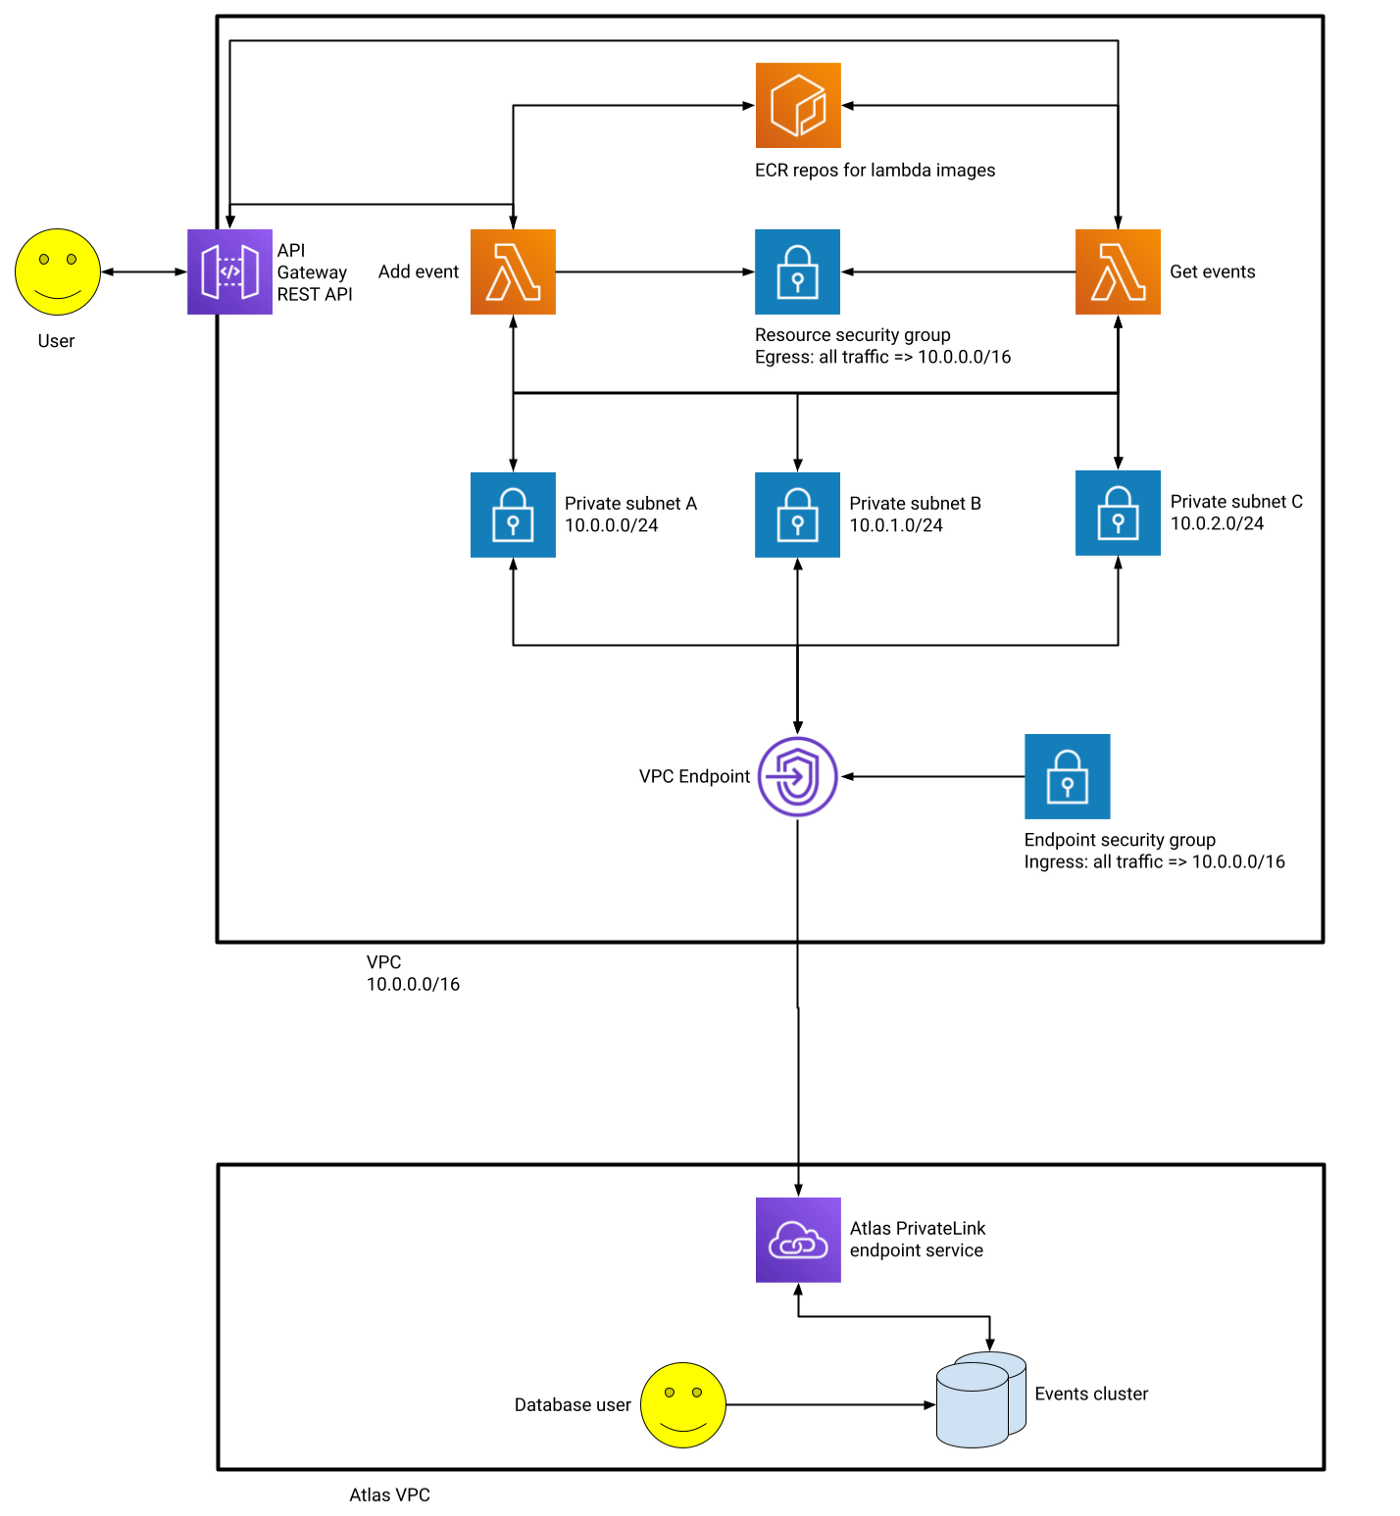 An end-to-end architecture diagram of our solution, detailing the cloud technologies it uses and how they interact.